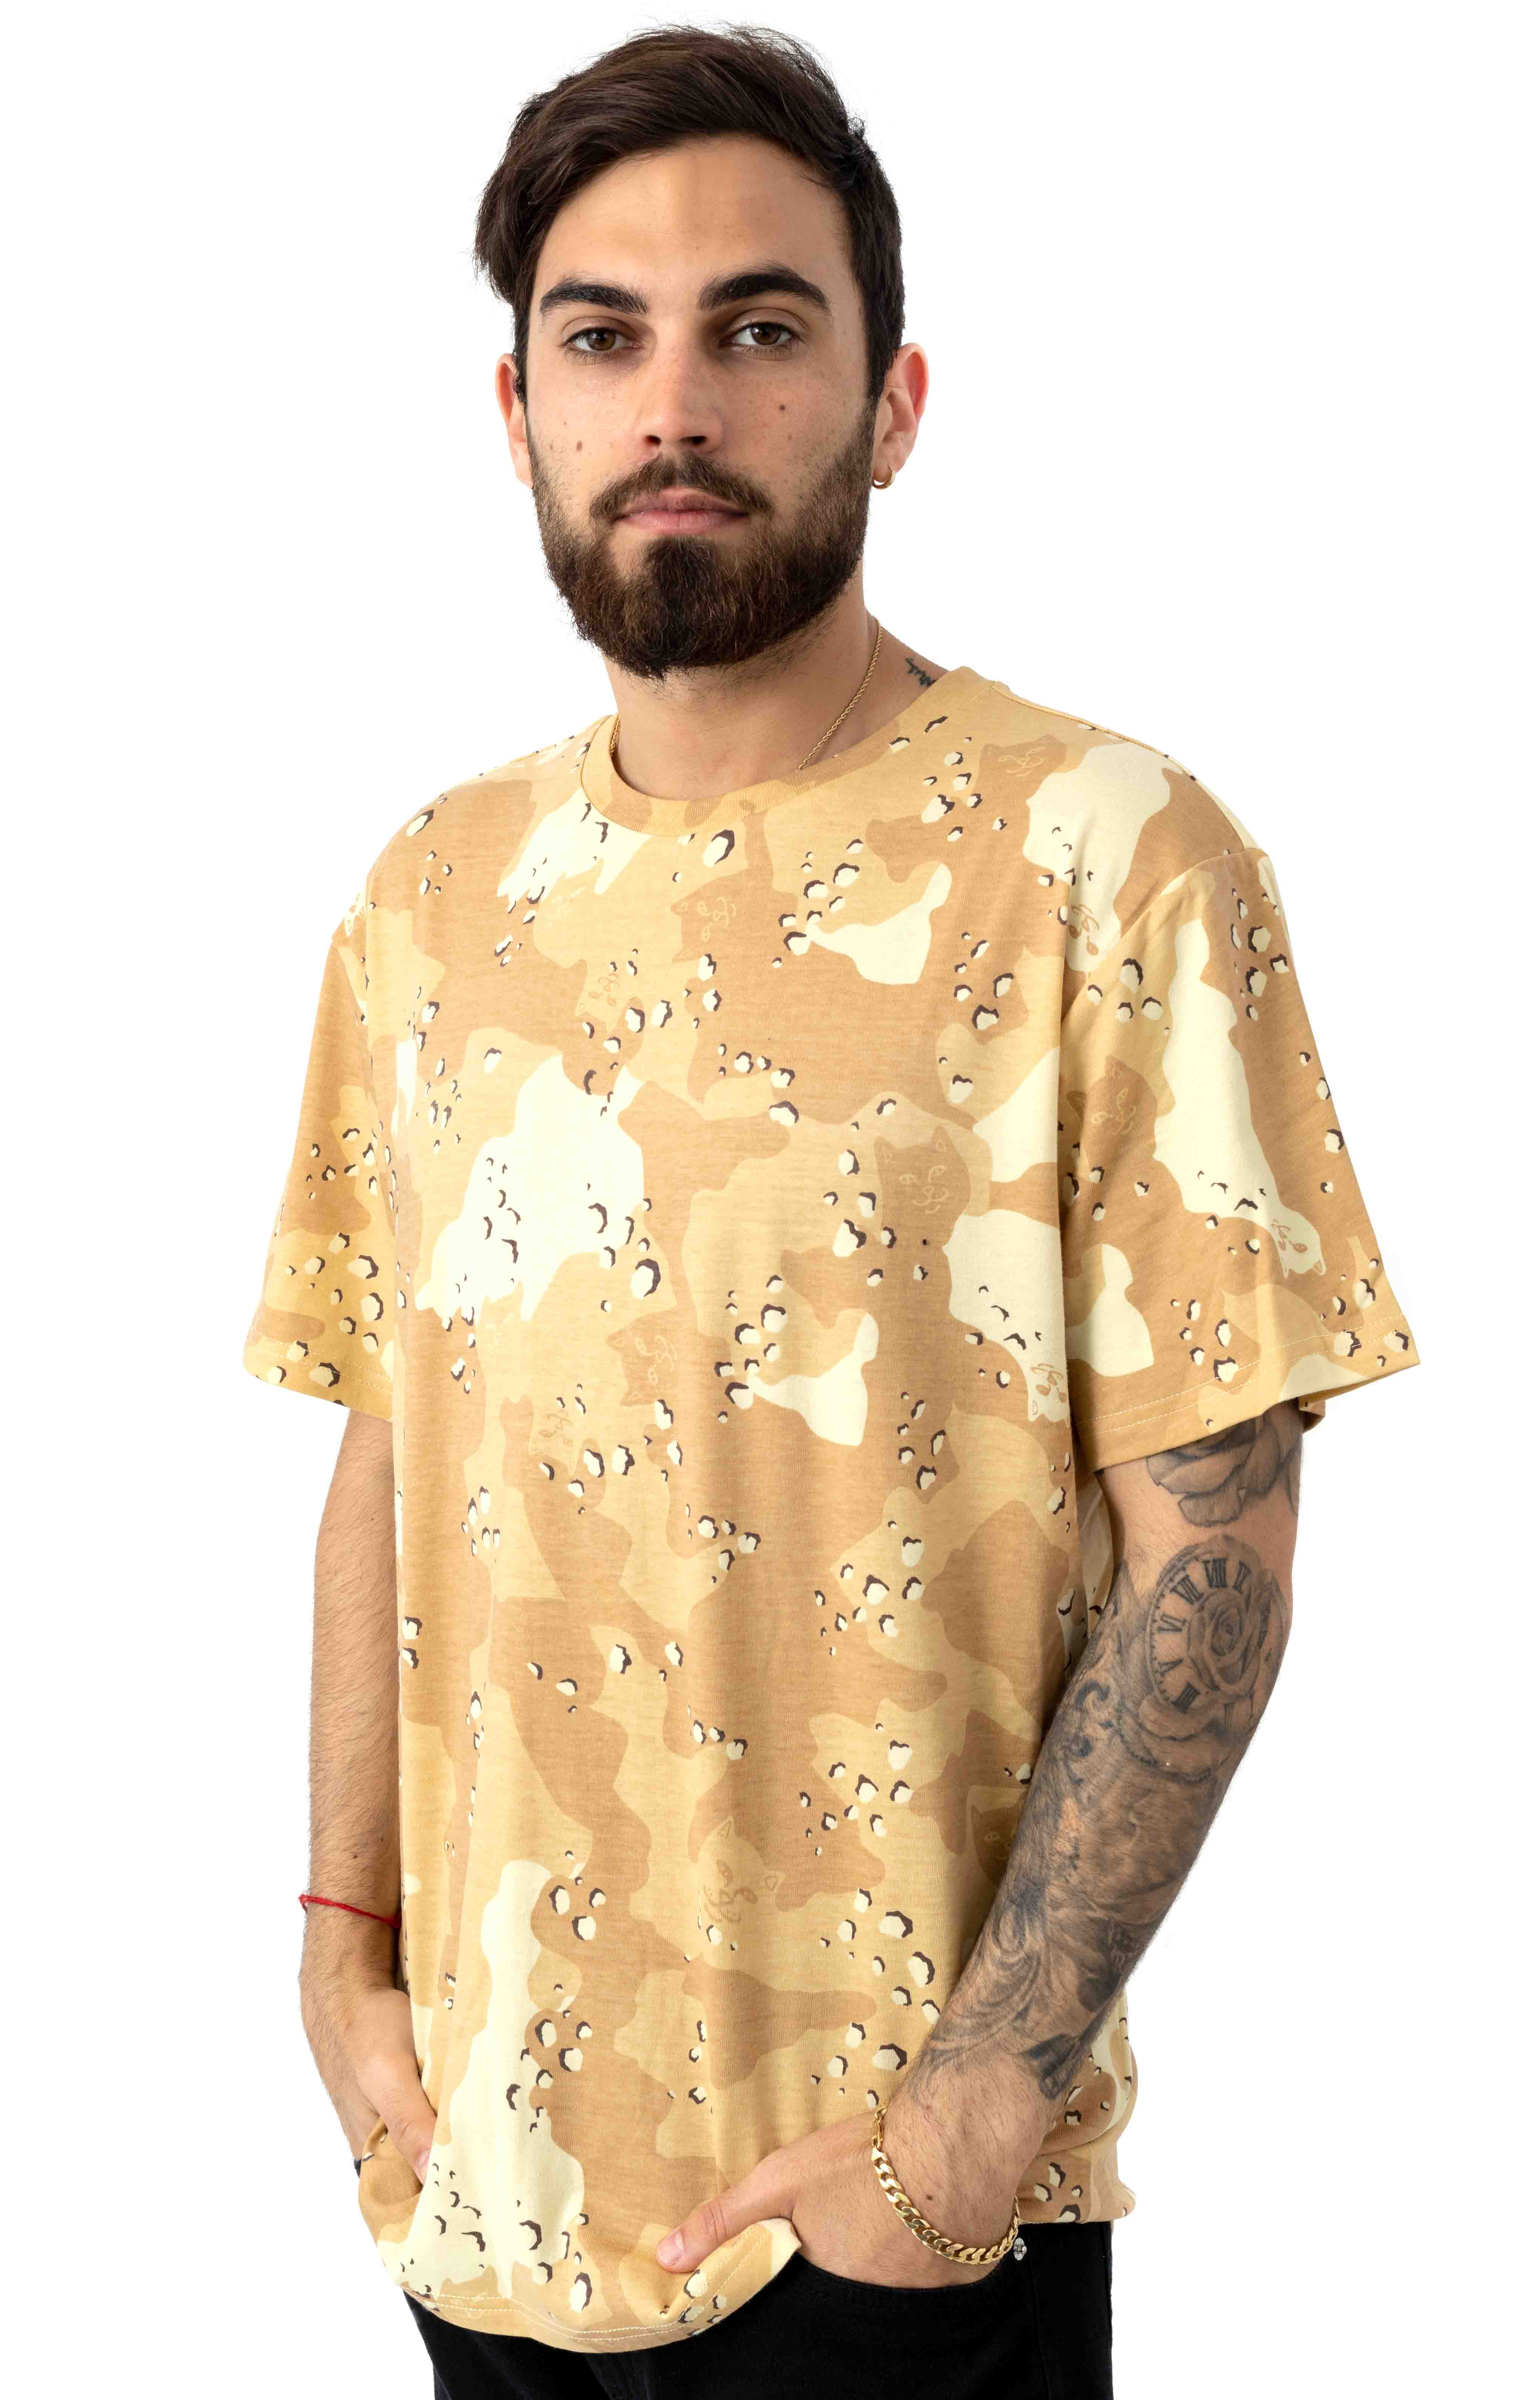 Nerm Camo All Over T-Shirt - Choc Chip Camo